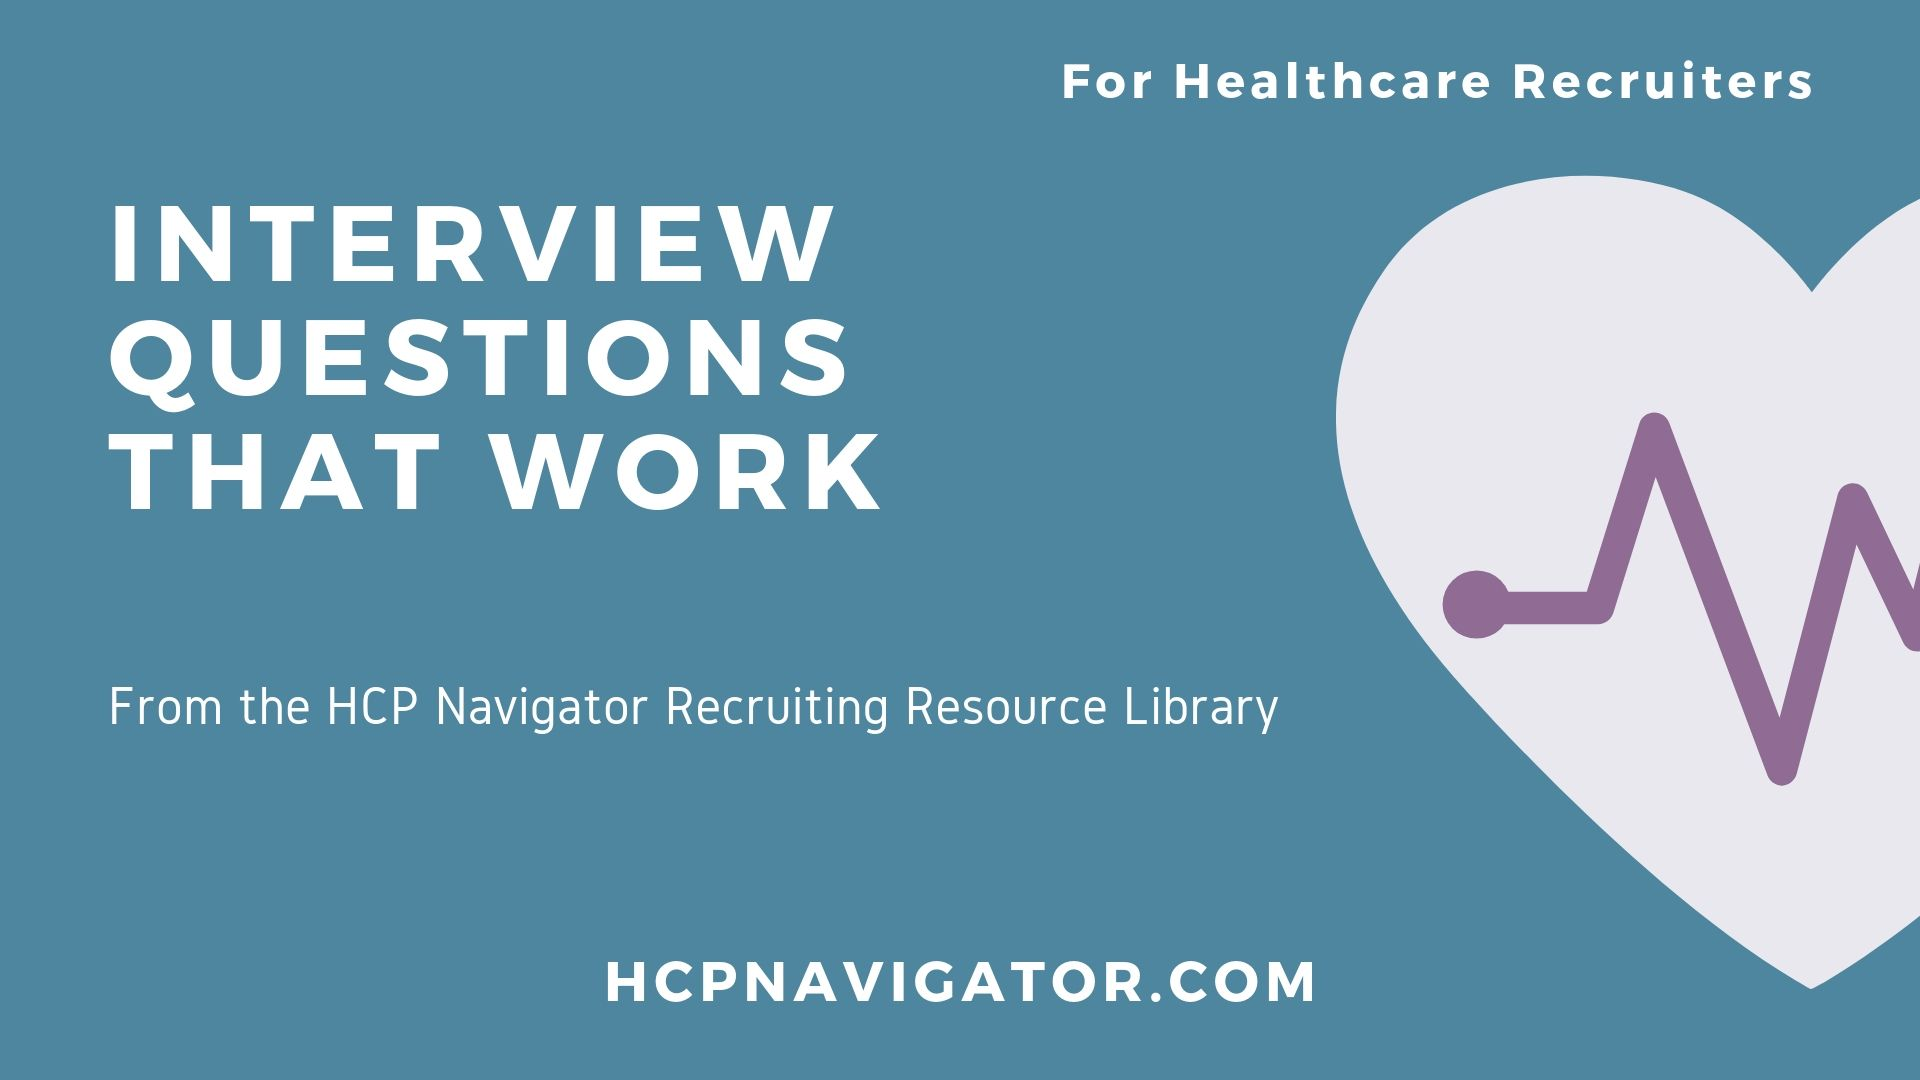 Interview Questions That Work For Healthcare Recruiters